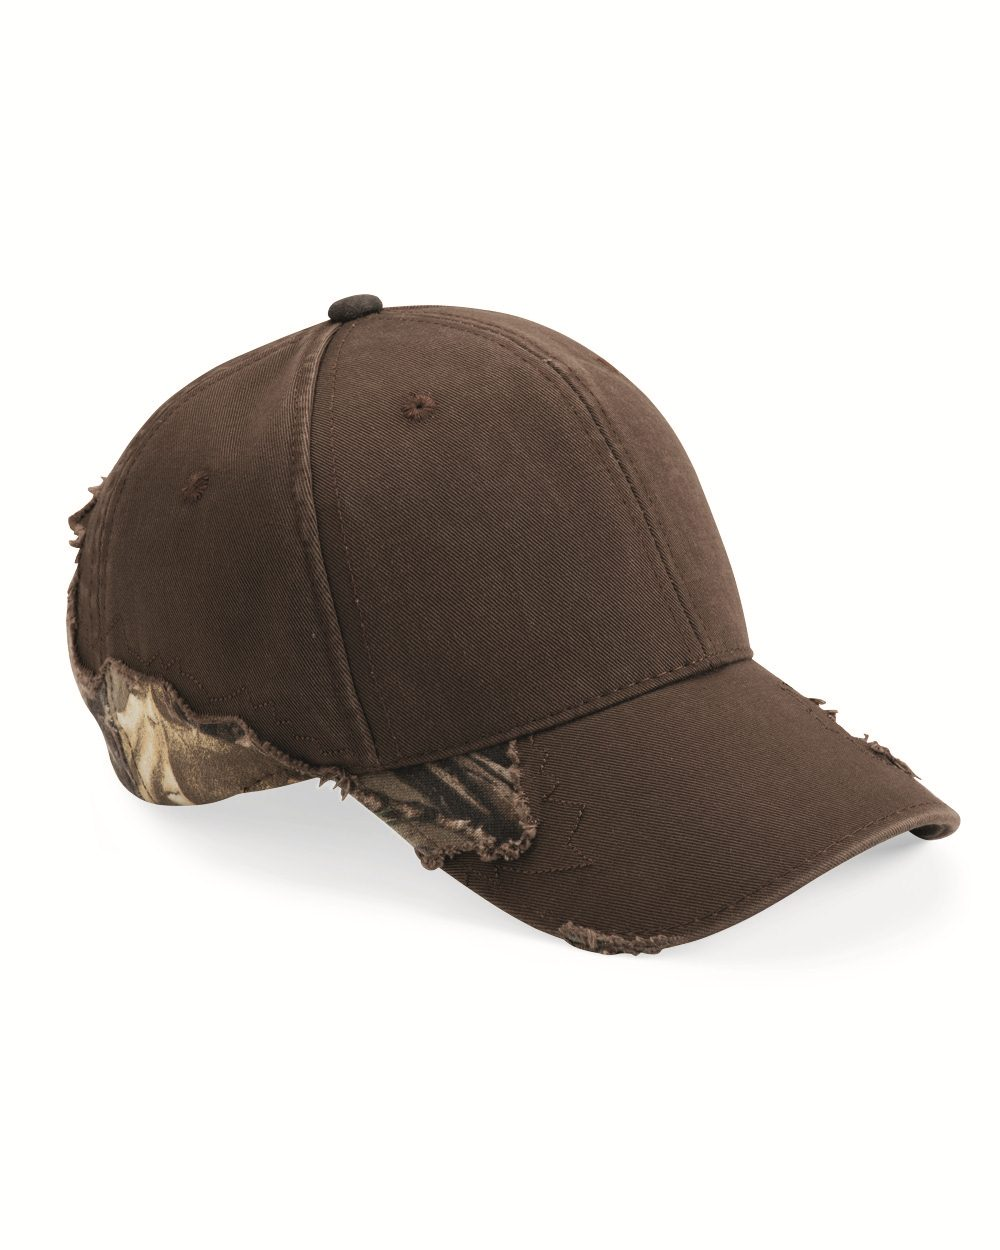 Outdoor Cap BSH350 Frayed Camouflage Cap